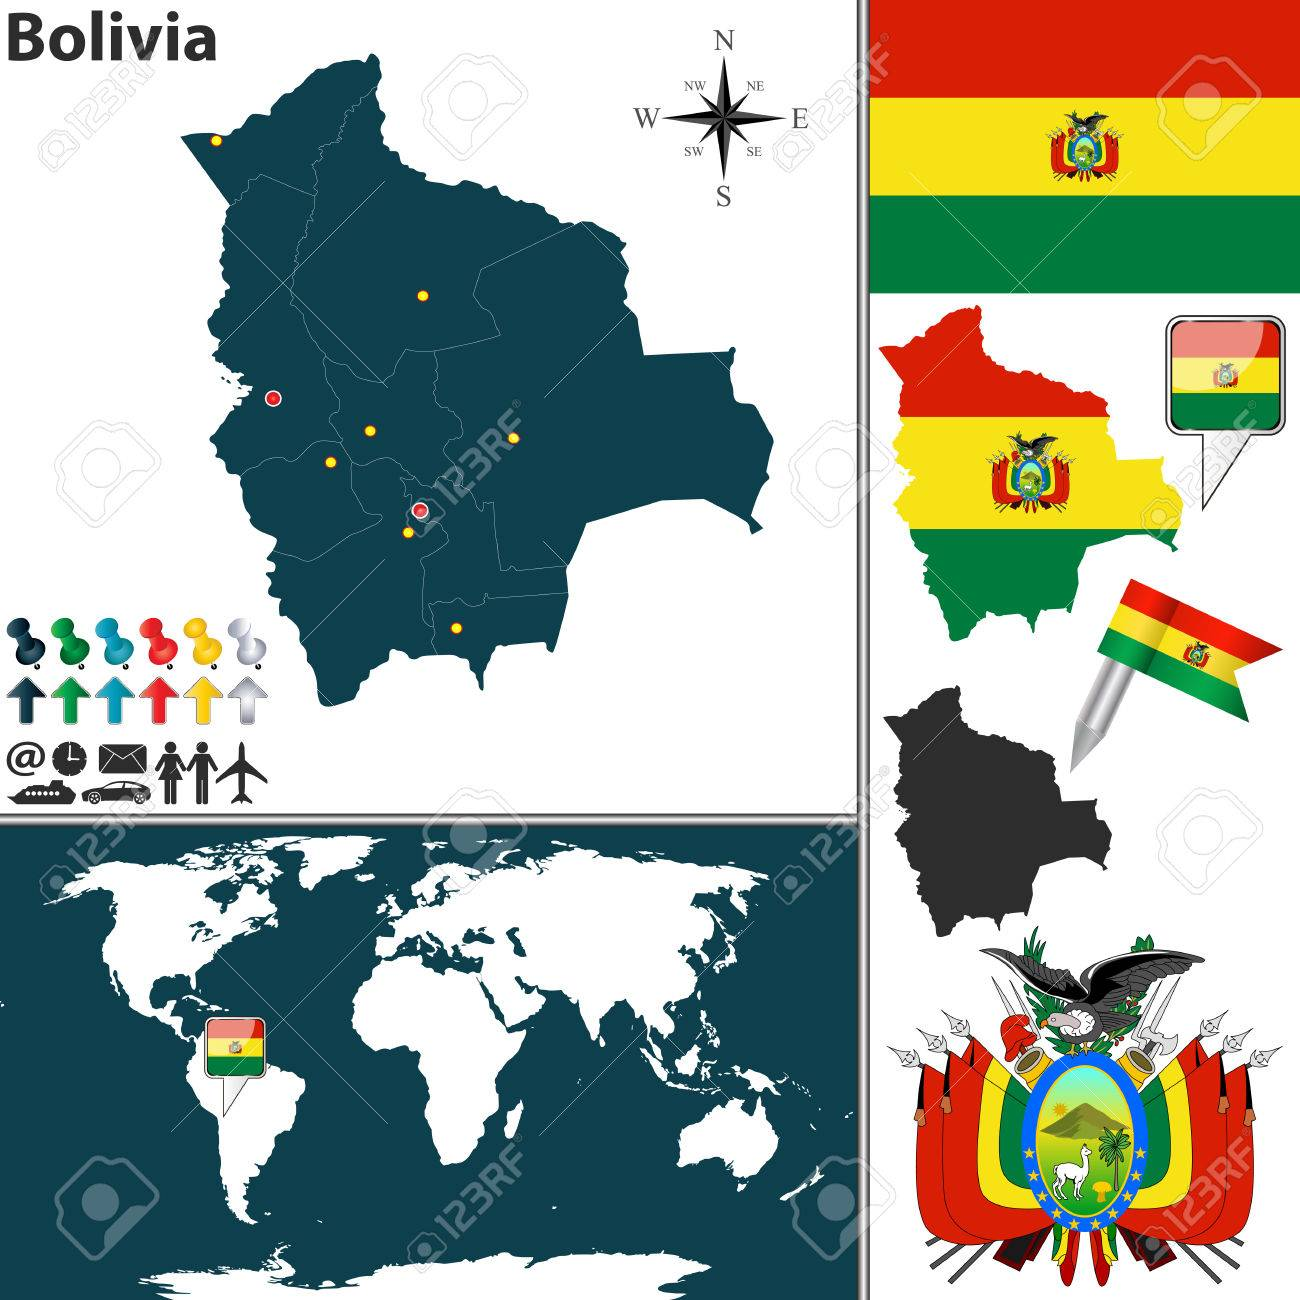 Map of bolivia with regions coat of arms and location on world map of bolivia with regions coat of arms and location on world map stock vector gumiabroncs Image collections